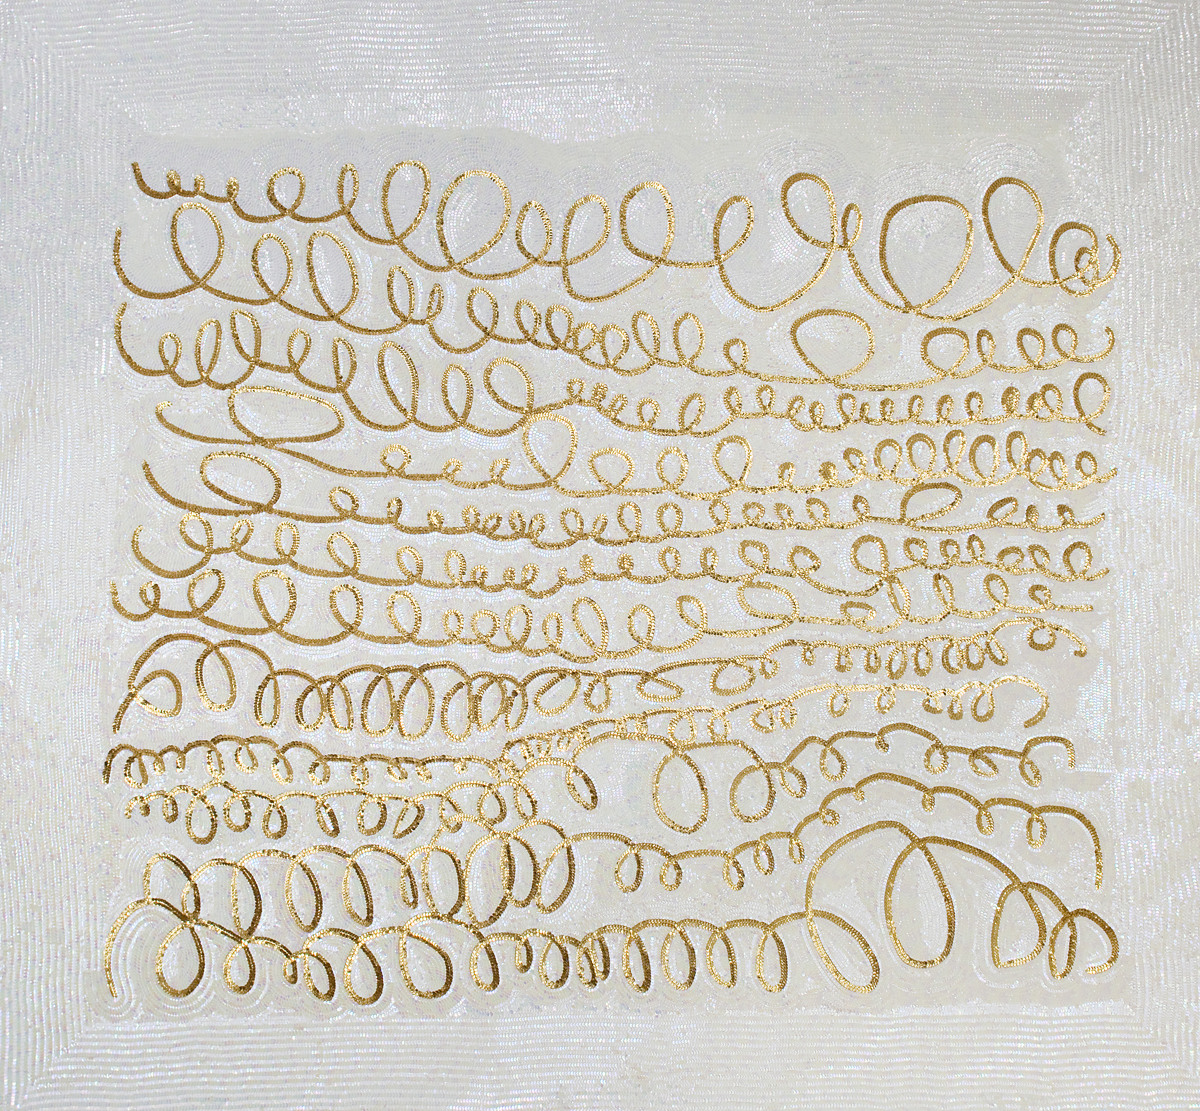 Daniel Gonzalez, Pimp Art History -The First Love Letter After Twombly, 2010, hand-sewn sequins on canvas, 190 x 190 cm